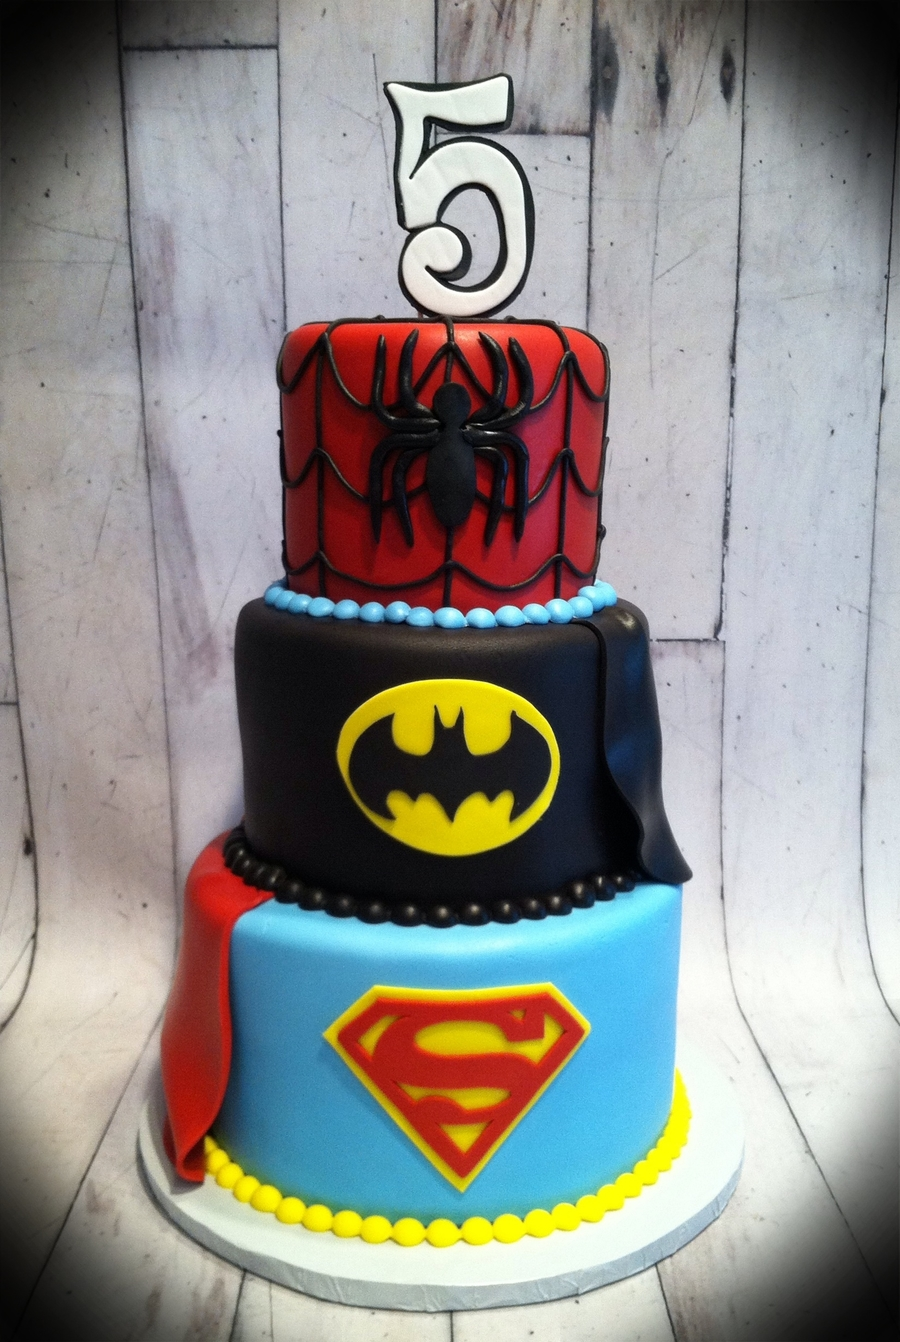 Superhero Cake on Cake Central